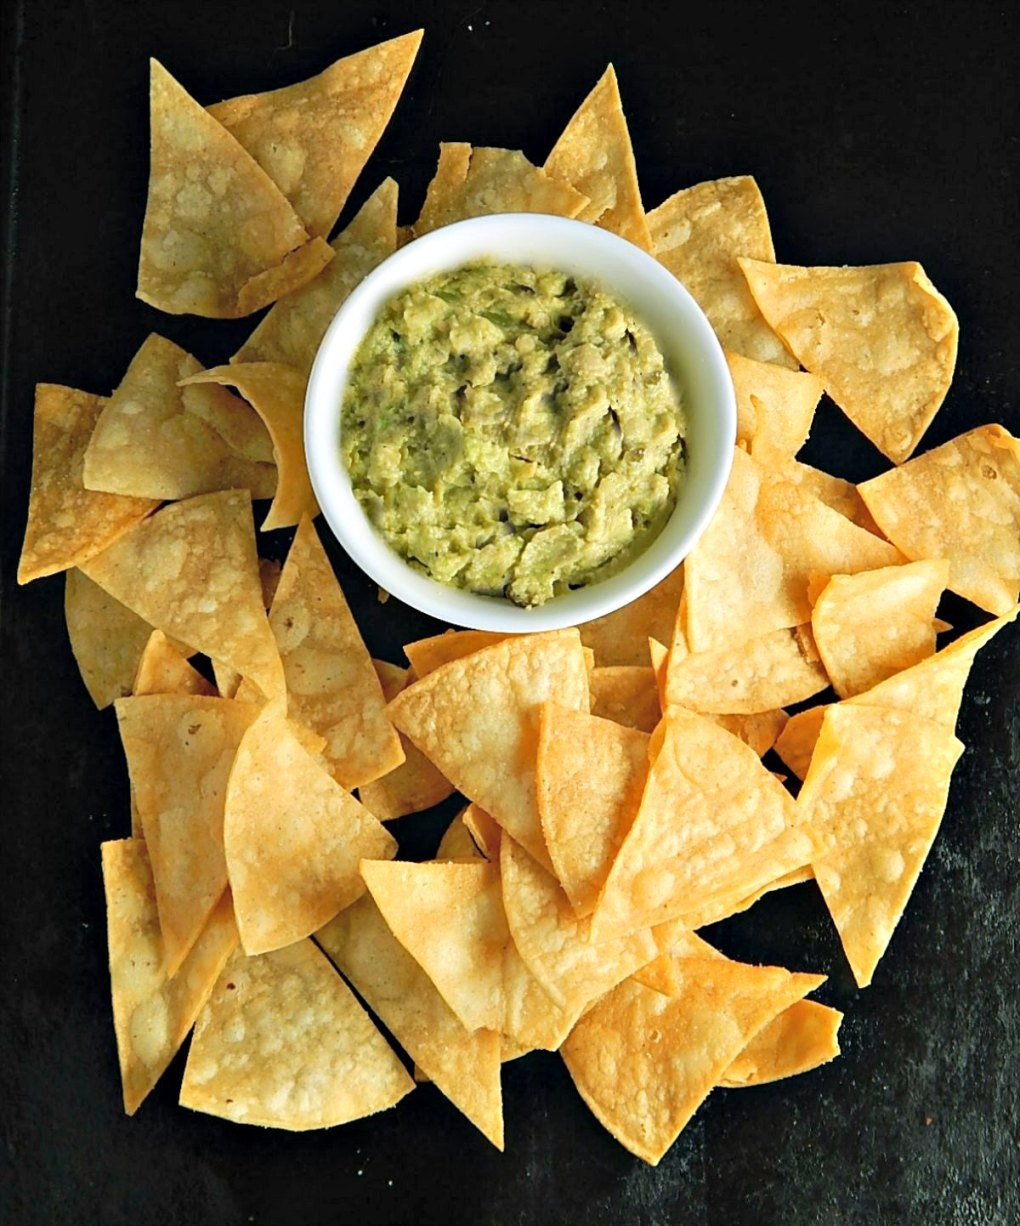 Restaurant Style Homemade Tortilla Chips